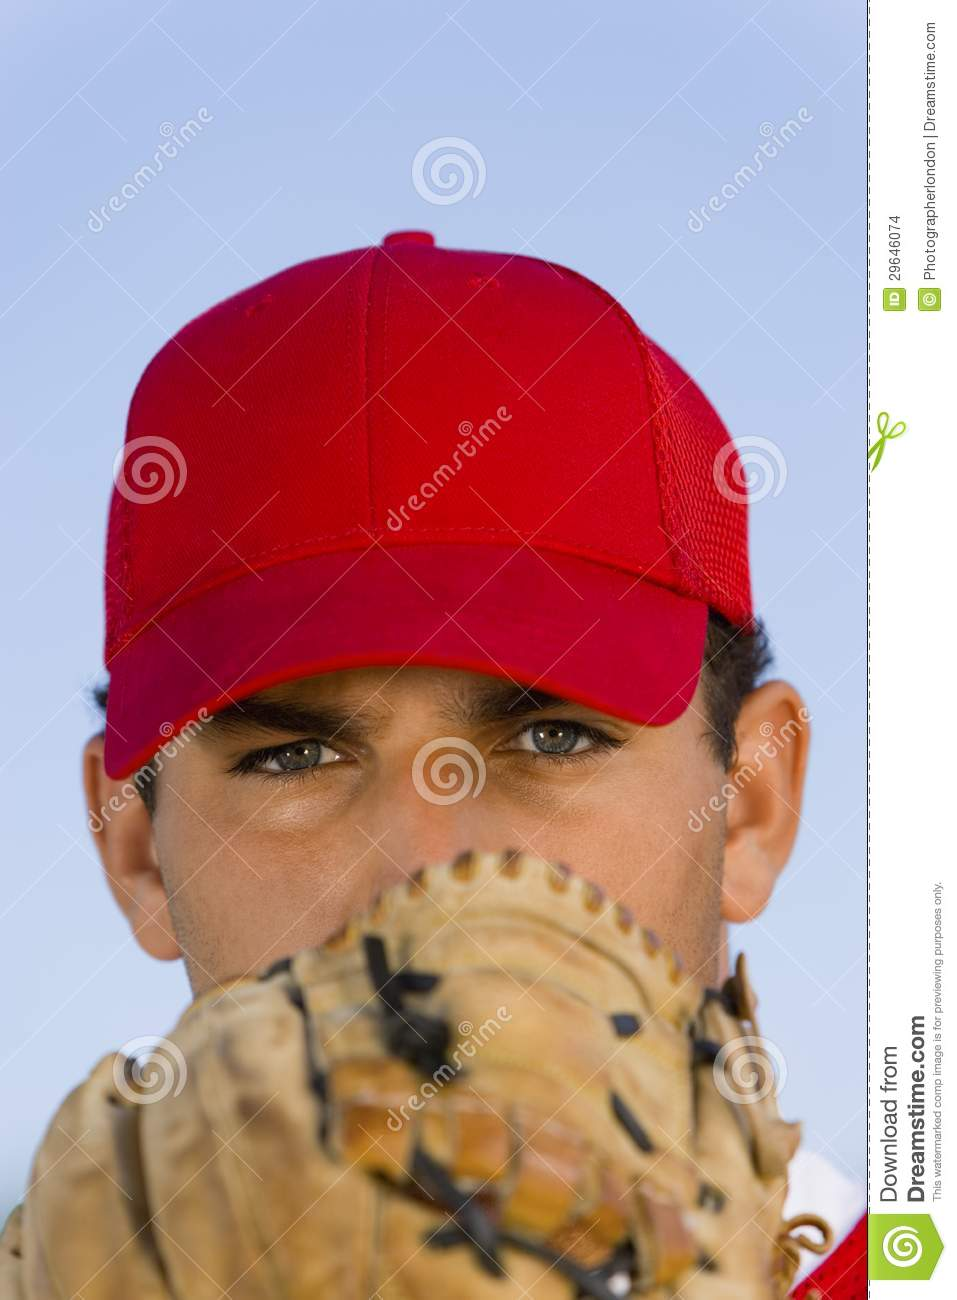 Baseball Pitcher Holding Glove In Front